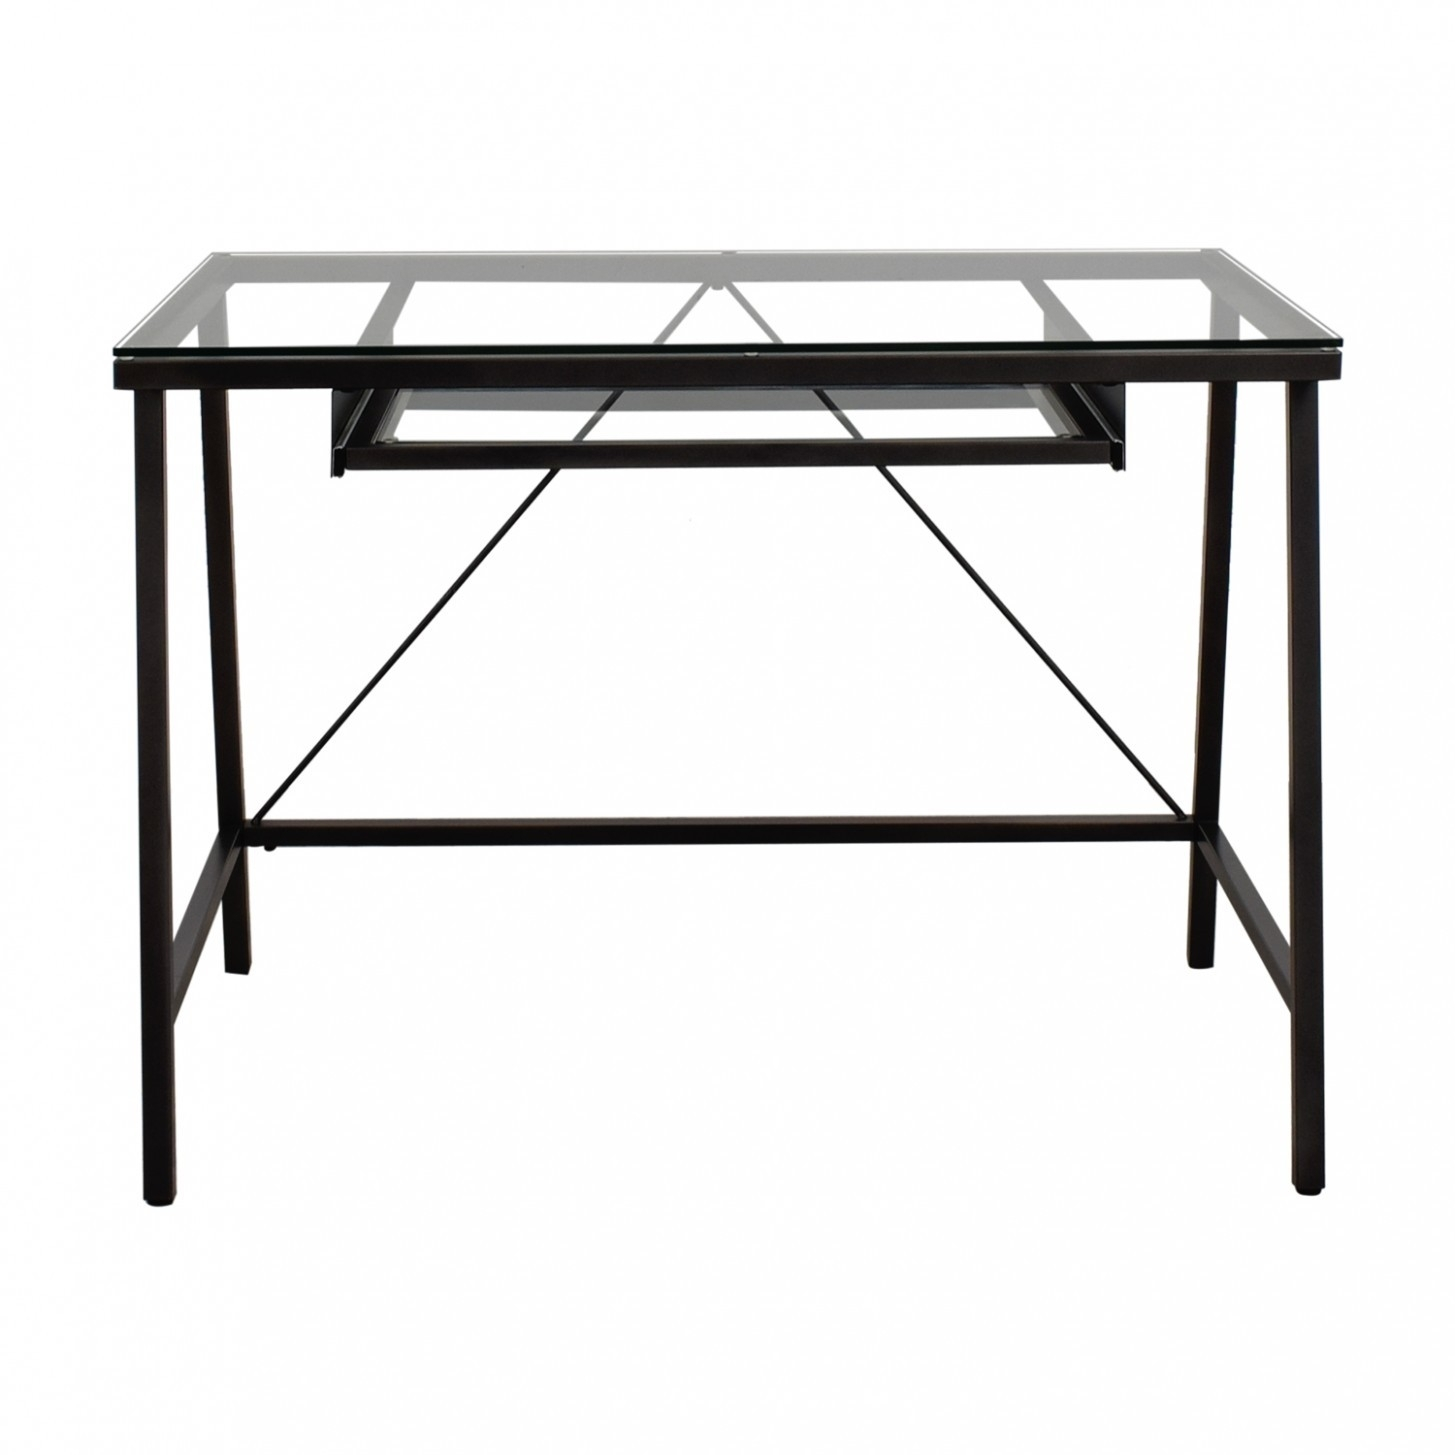 Cb2 Rolling Cart Desk Luxury 3 Ways To Style And Use Ikea S Kallax inside Go-Cart White Rolling Coffee Tables (Image 9 of 30)